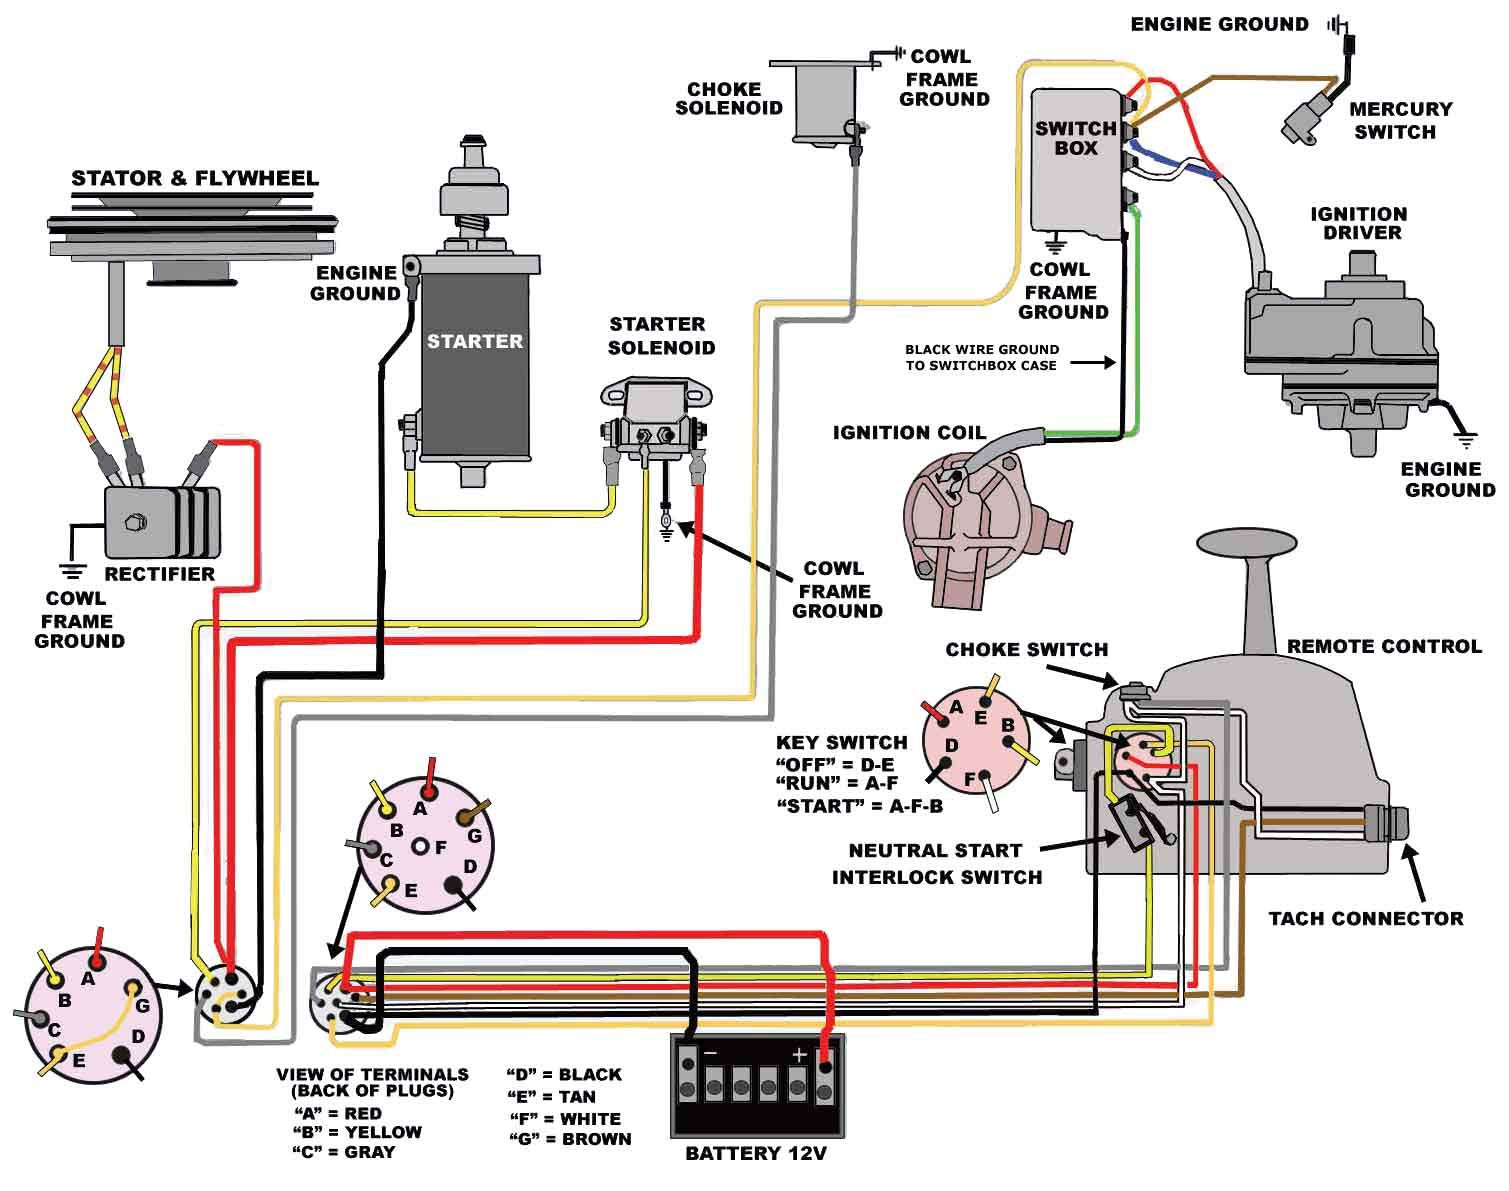 mercruiser key switch wiring diagram wiring diagram detailed mercruiser 5 7 hose diagram 8 2 mercruiser engine diagram [ 1509 x 1191 Pixel ]